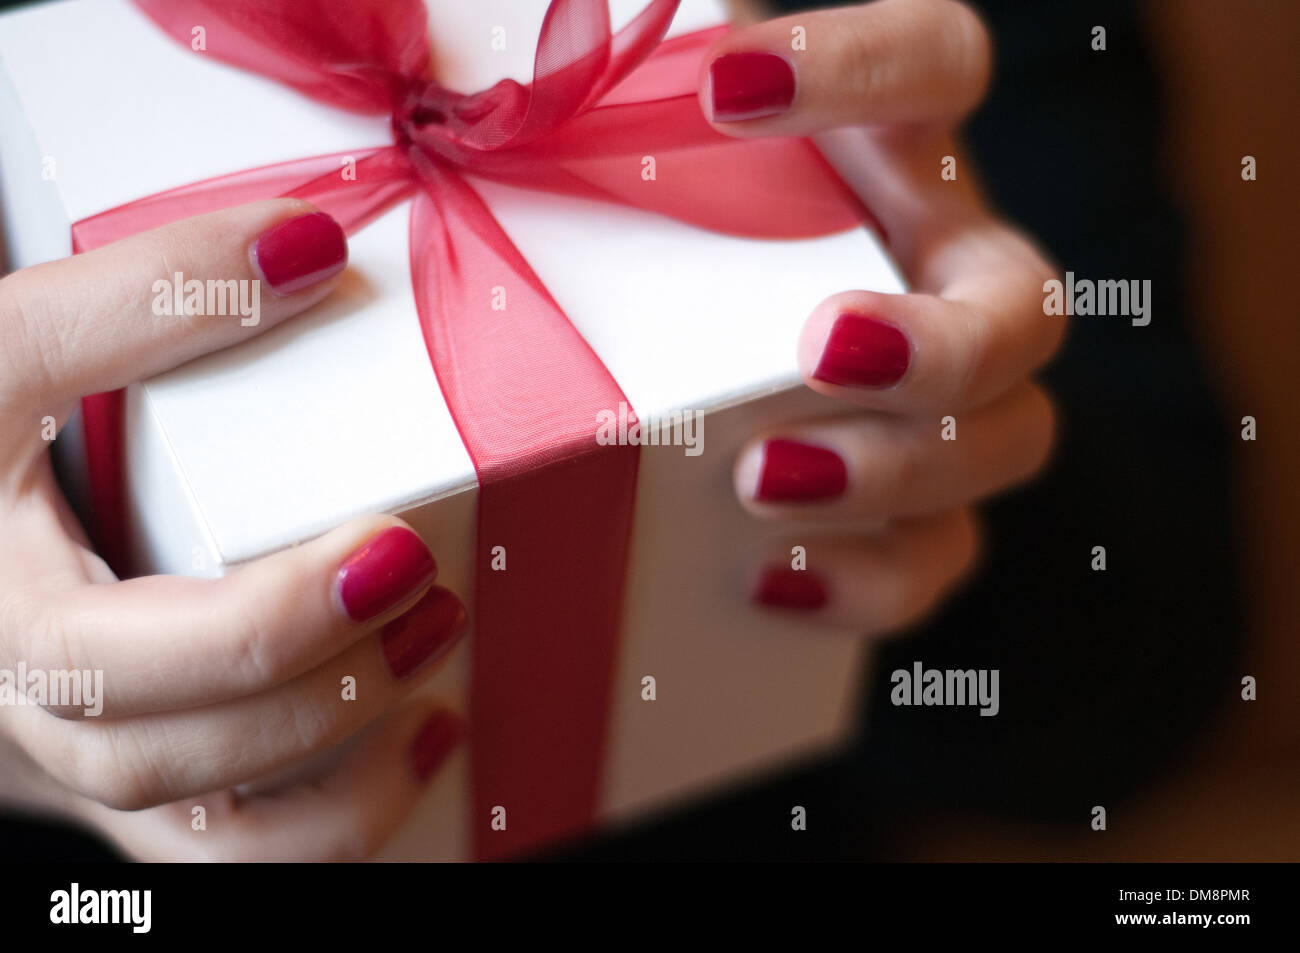 Woman offering gift - Stock Image